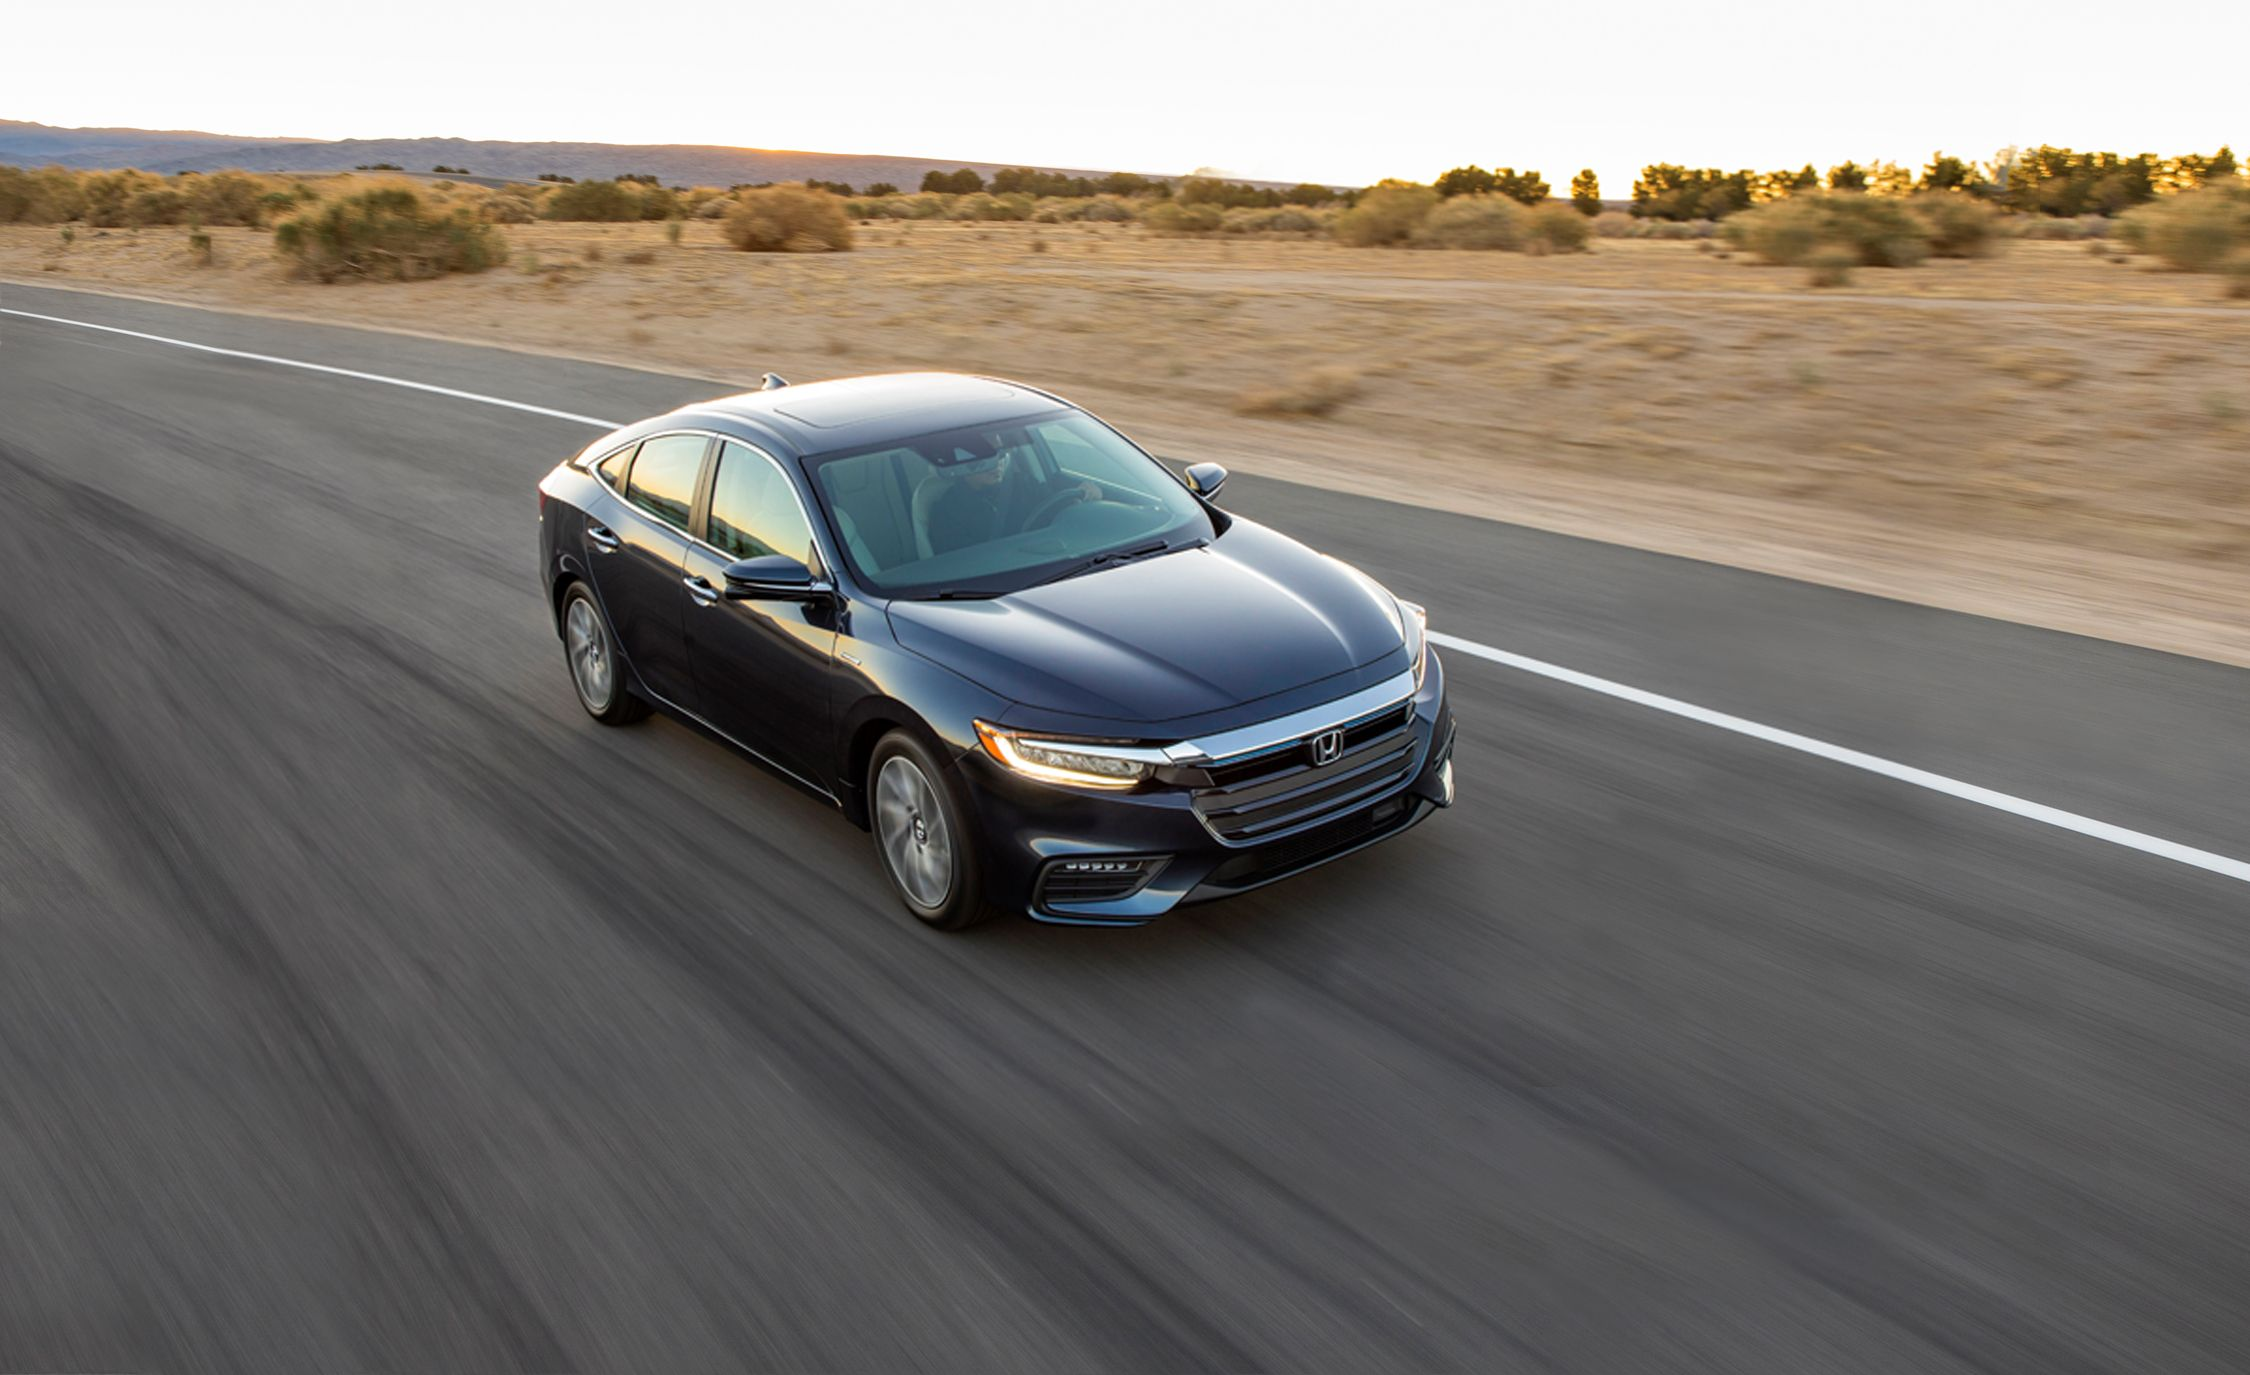 2019 Honda Insight: The 50 MPG Civic Hybrid Returns